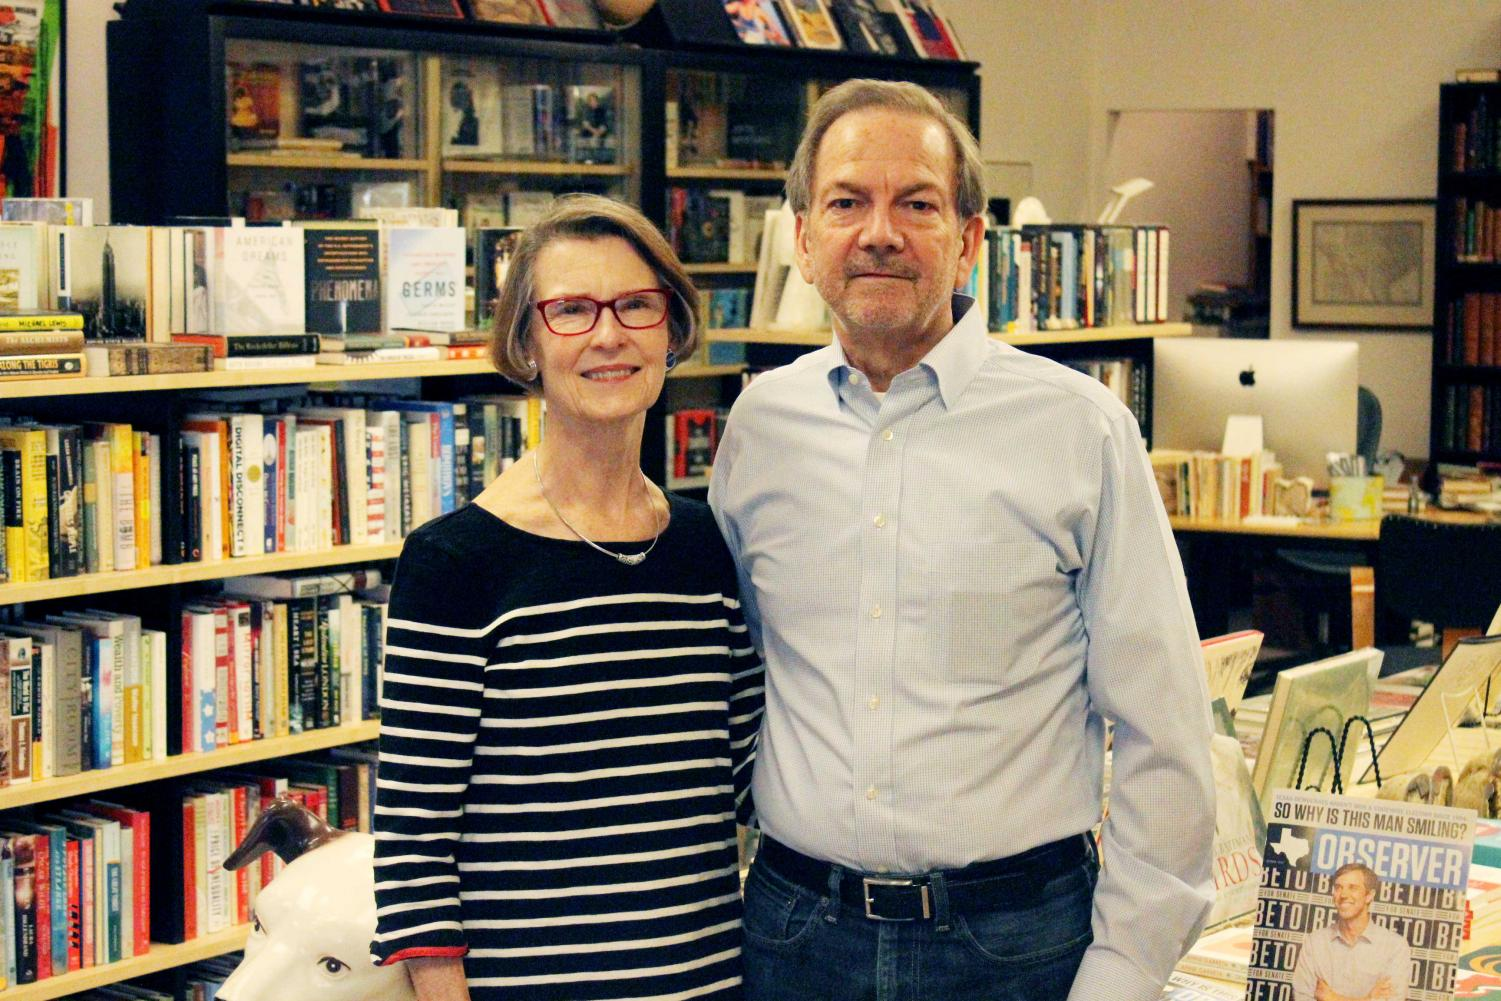 Literarity is owned by Bill and Mary Anna Clark, a husband and wife duo.